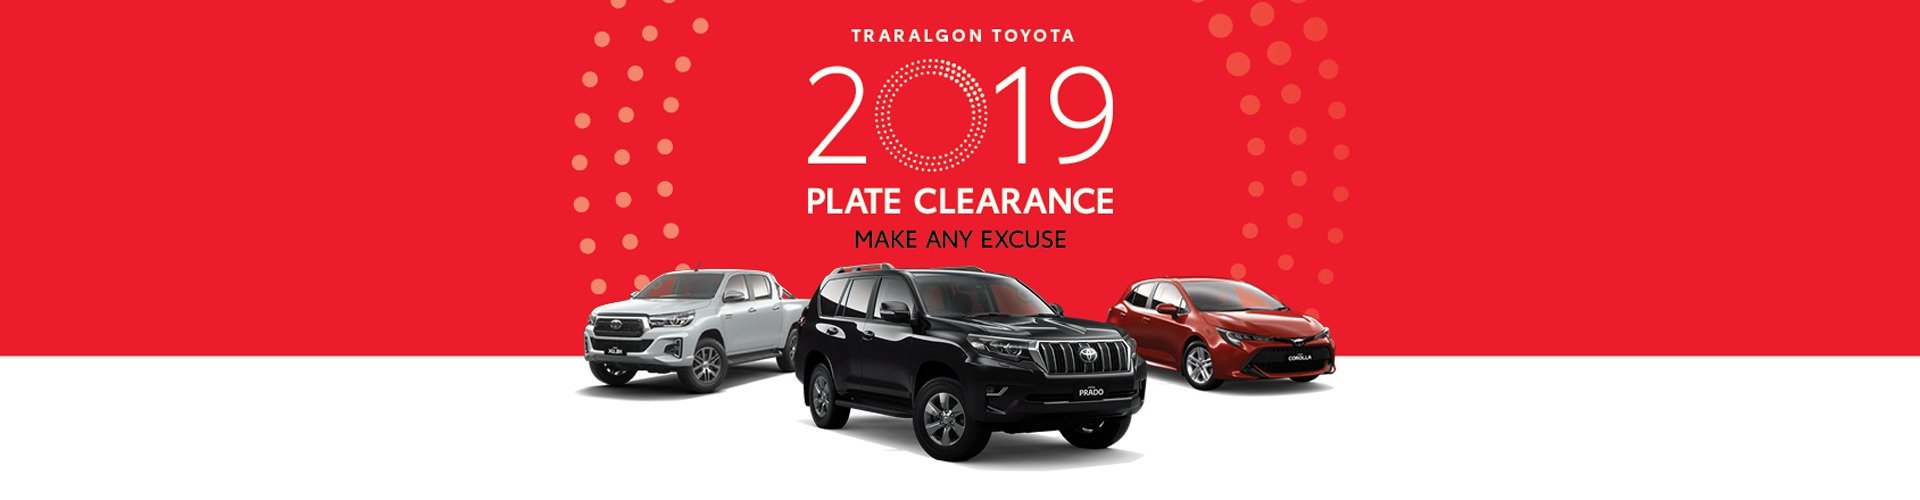 Traralgon Toyota 2019 Plate Clearance